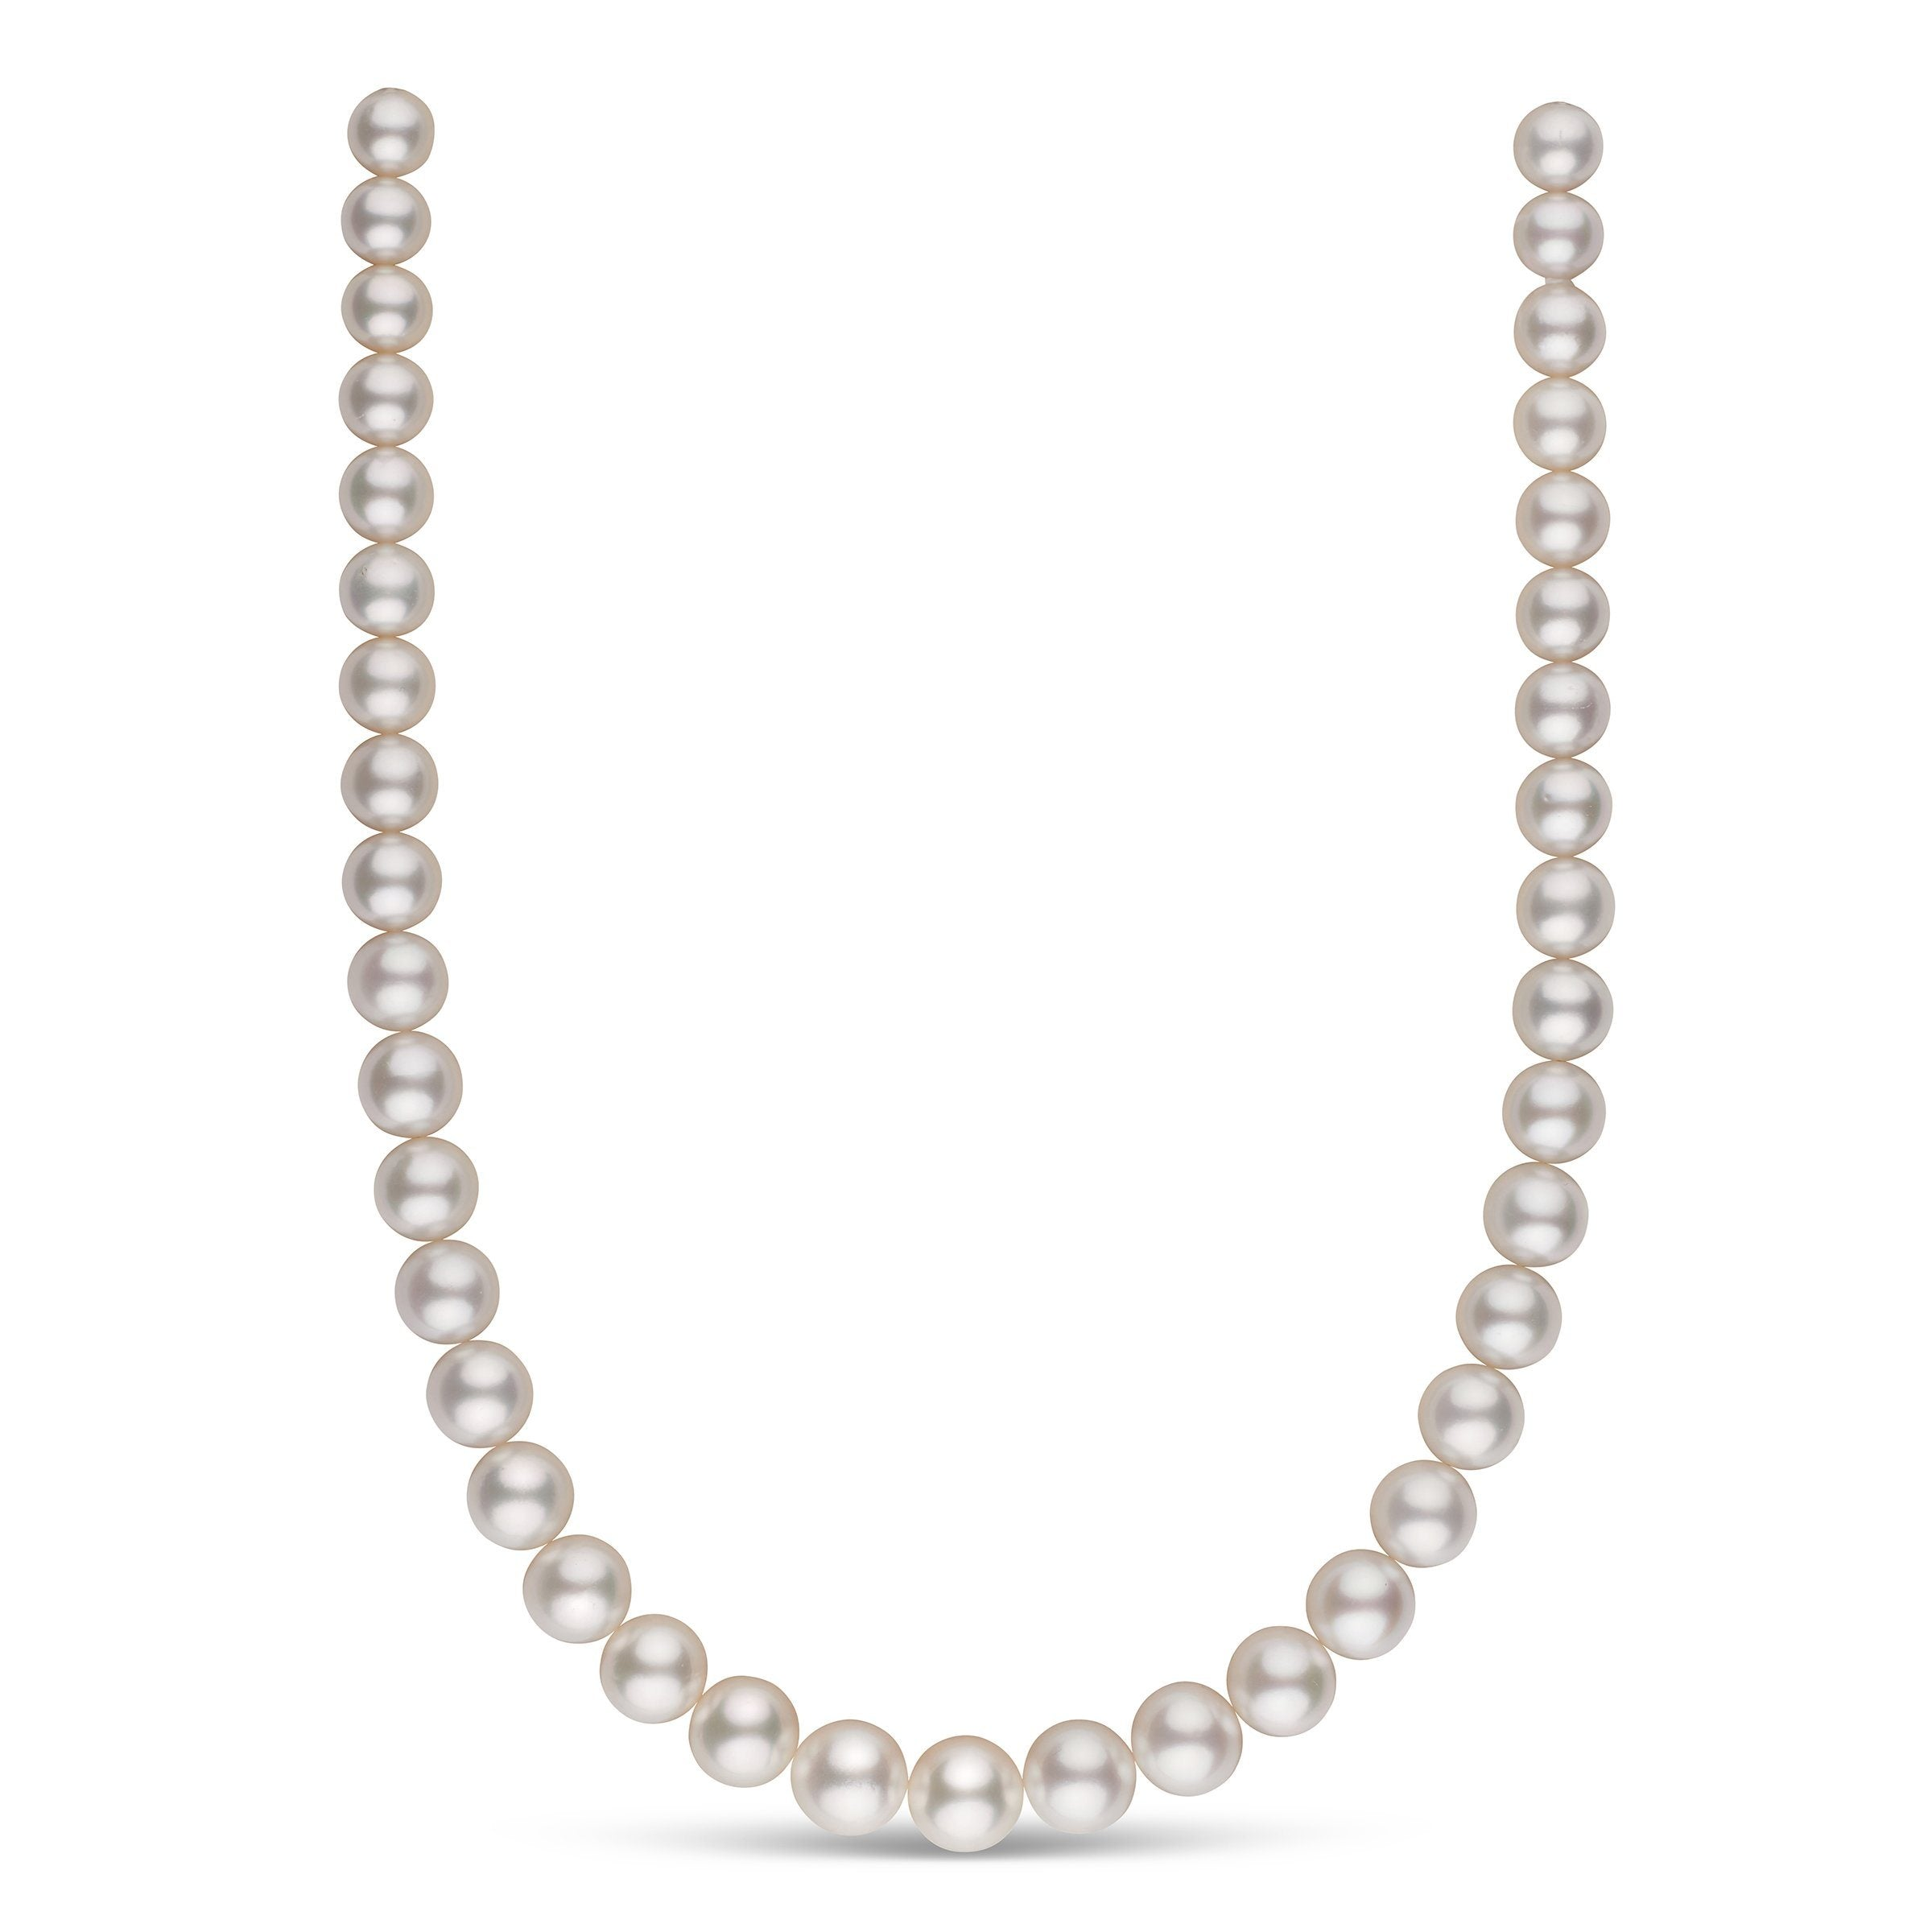 The Melody White South Sea Pearl Necklace